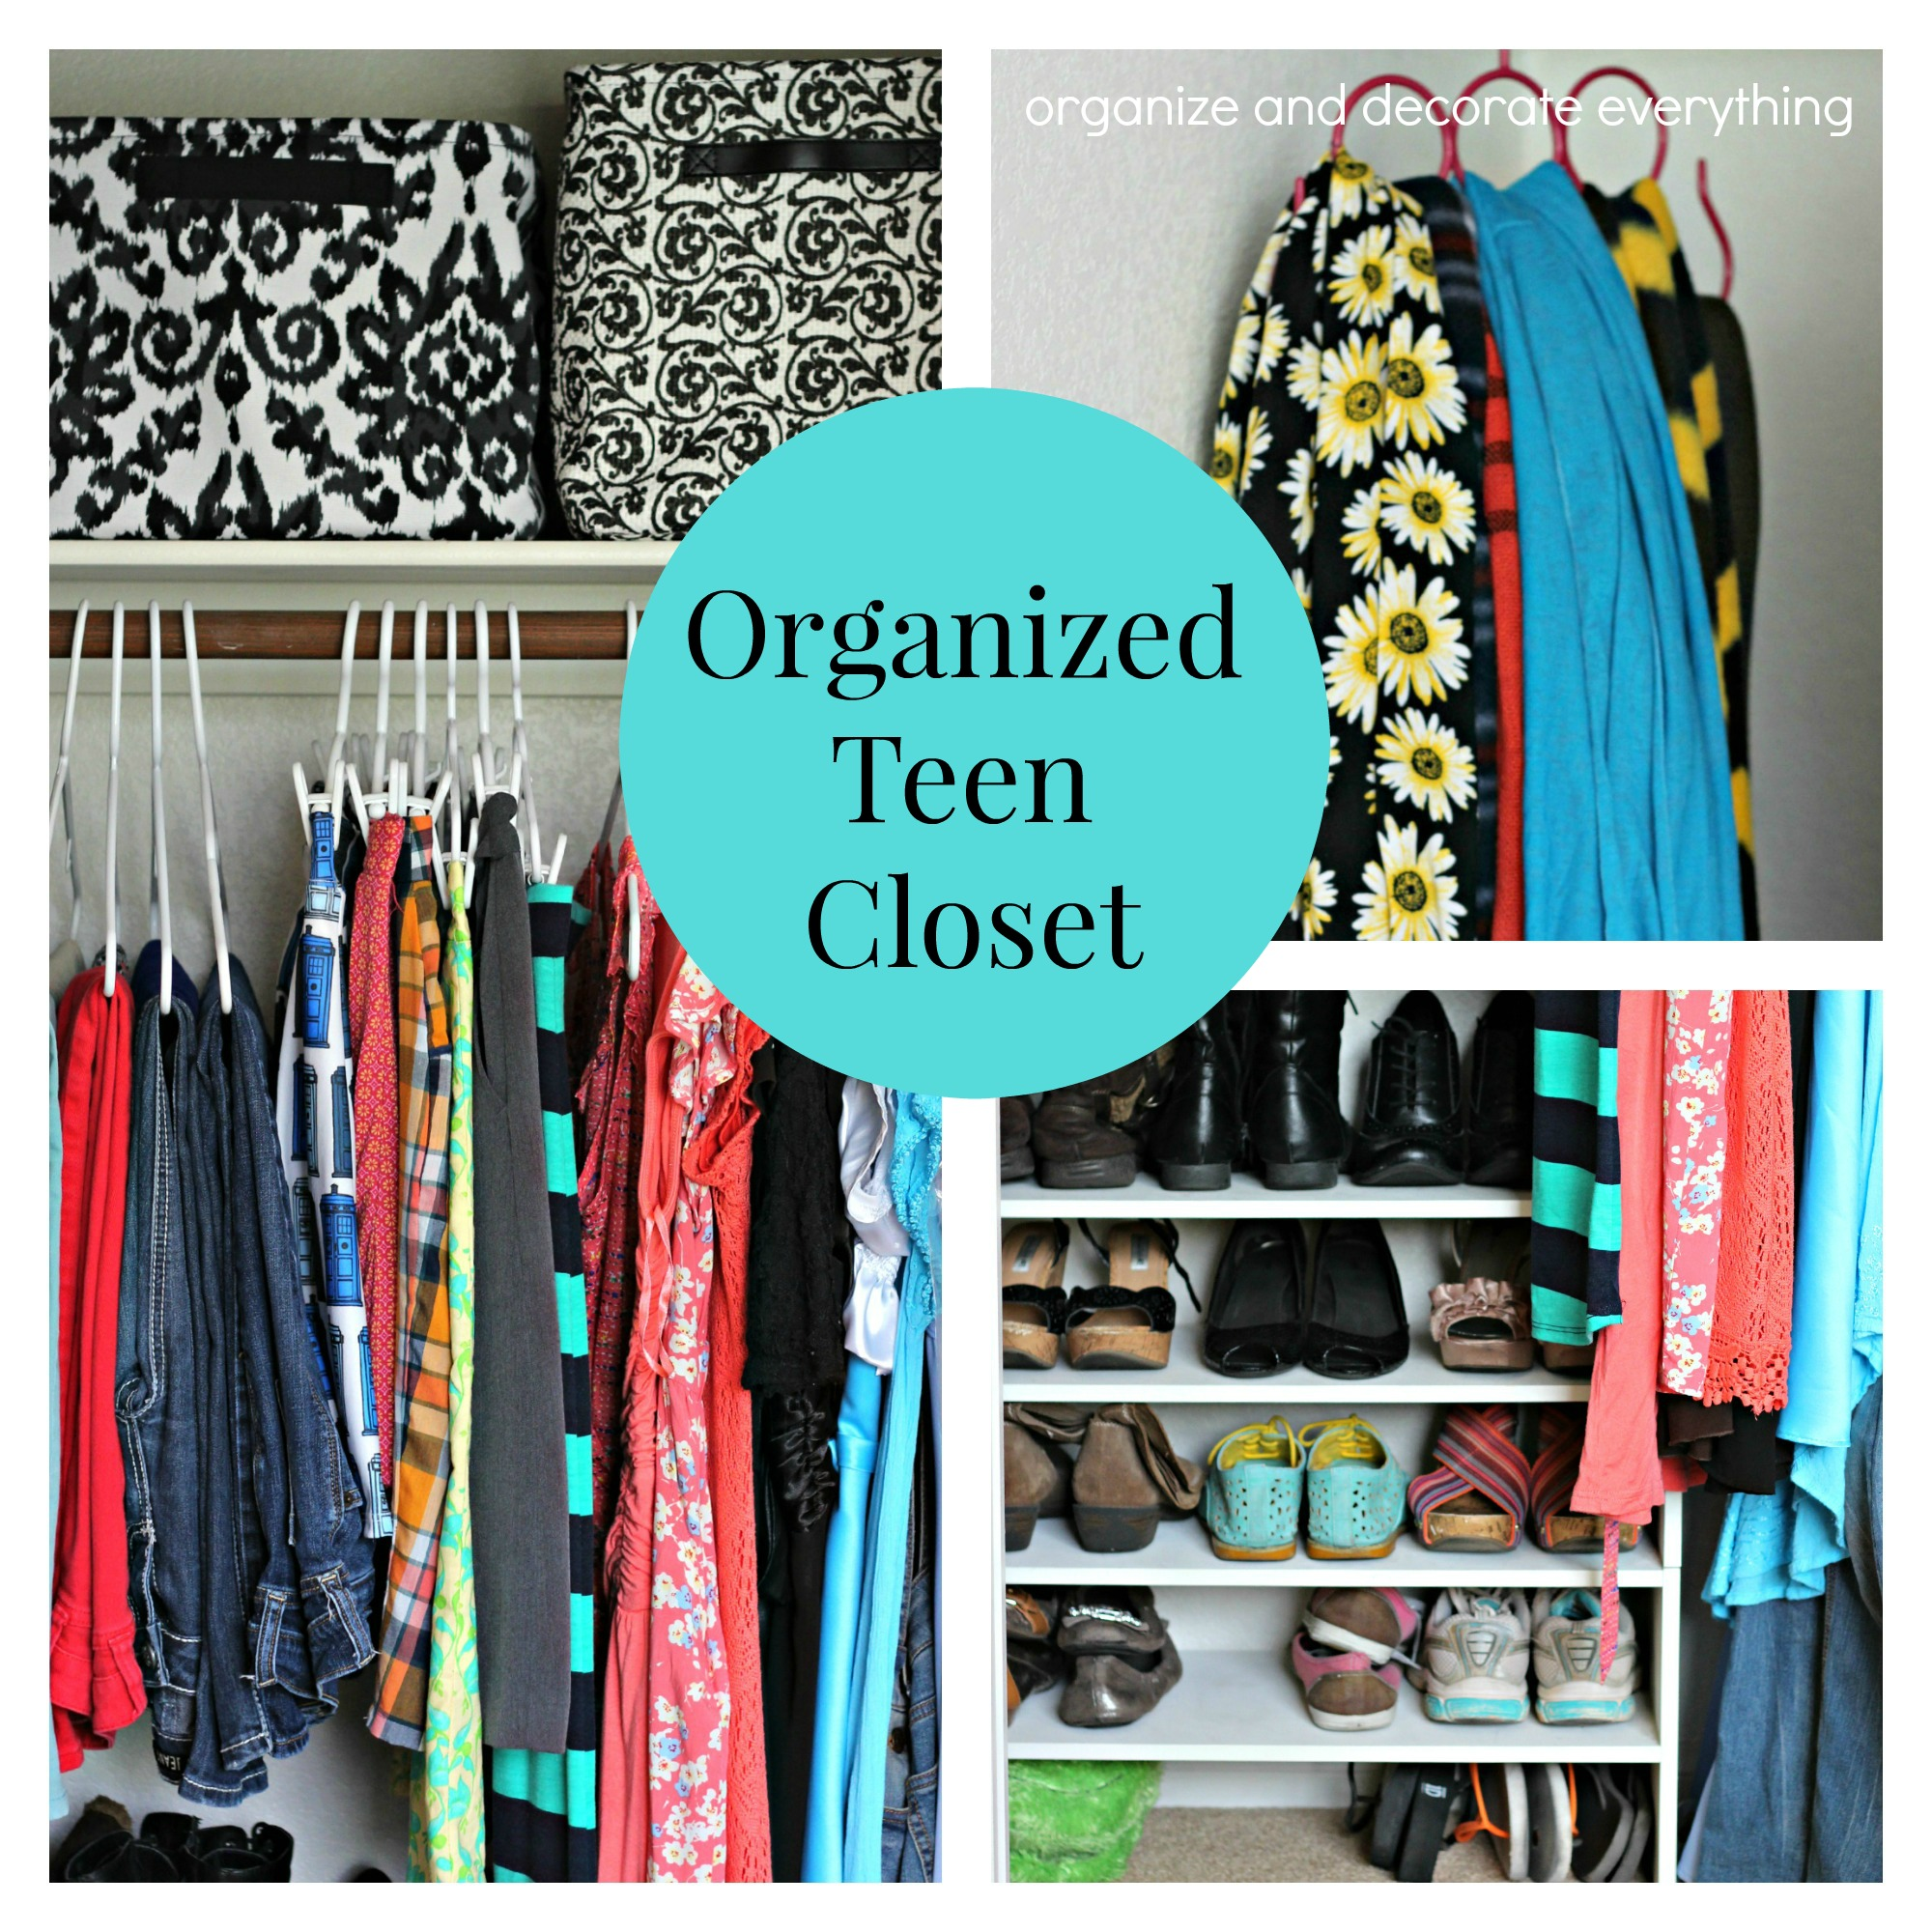 Organized teen closet organize and decorate everything - Keep your stuff organized with bedroom closet organizers ...